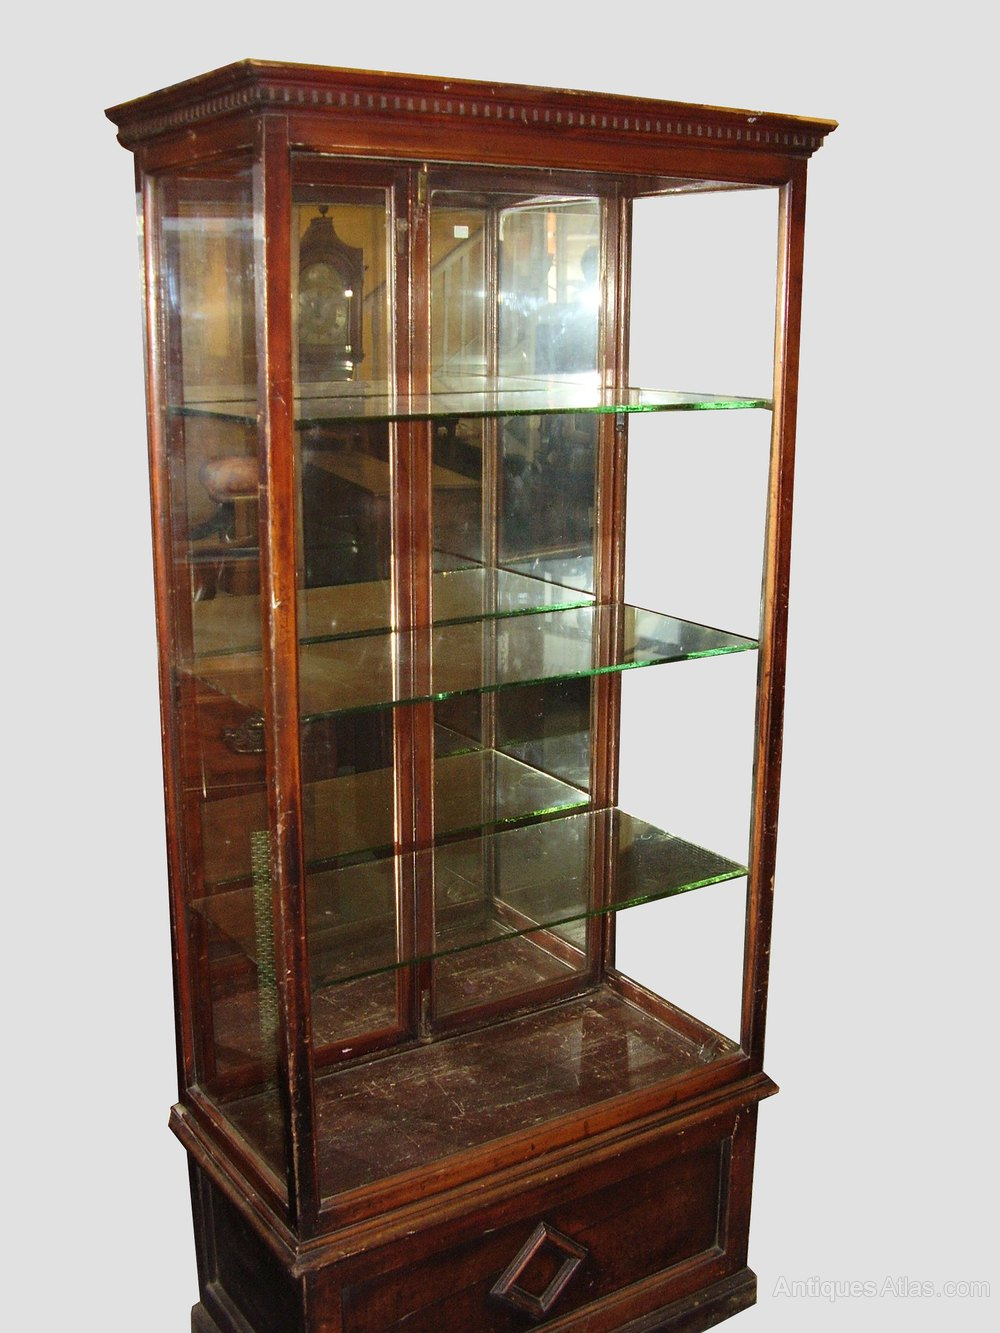 Glass shop display cabinet antiques atlas for Antique display cabinet